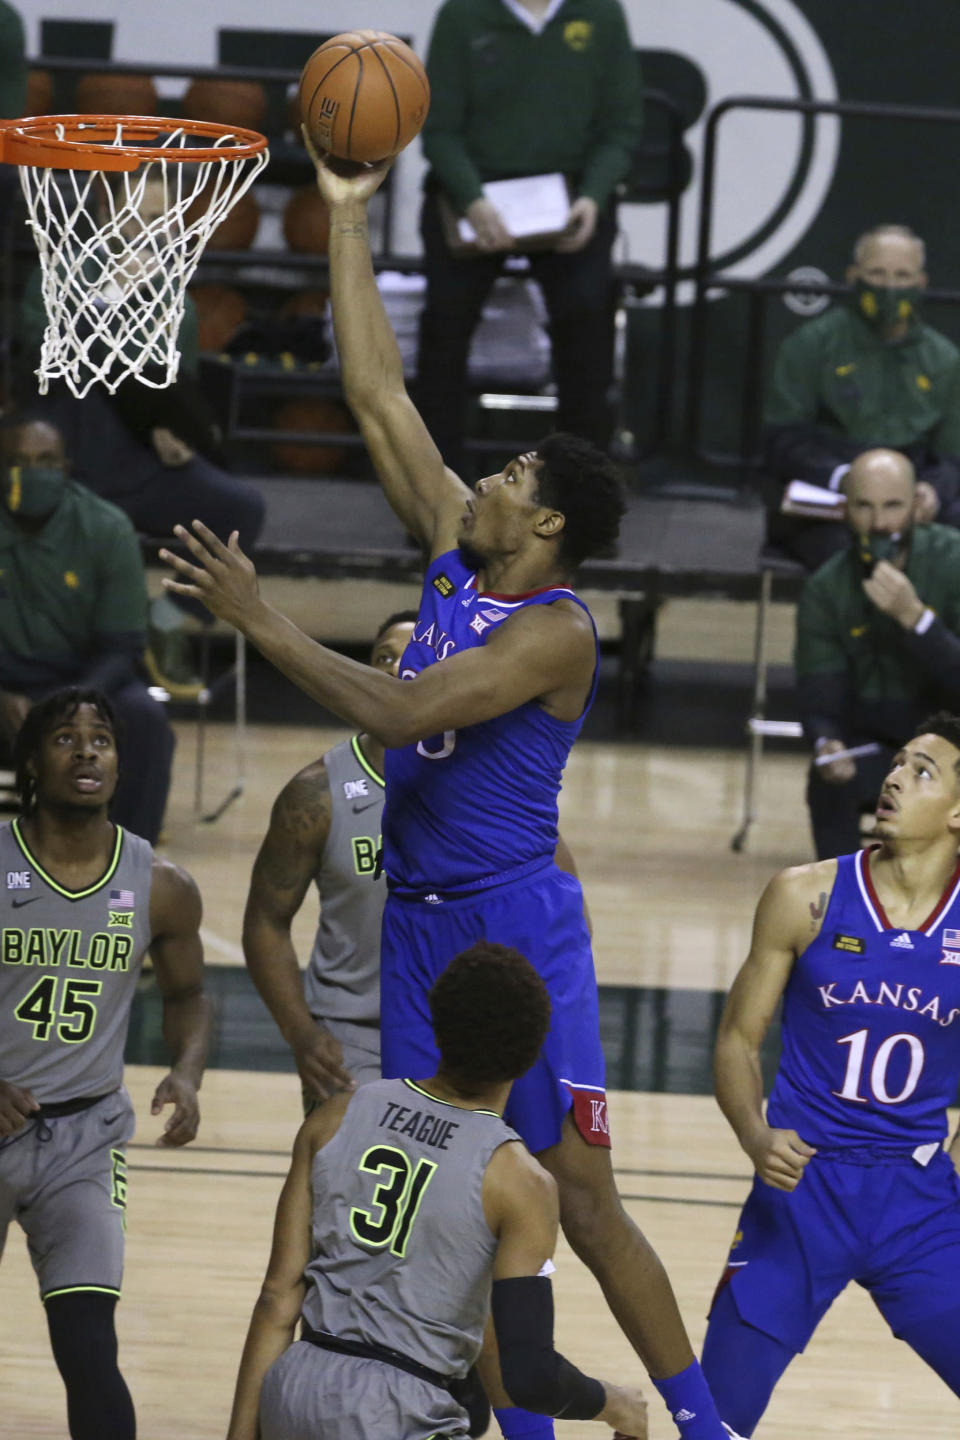 Kansas forward David McCormack (33) scores past Baylor guard Davion Mitchell (45) in the first half of an NCAA college basketball game, Monday, Jan. 18, 2021, in Waco, Texas. (AP Photo/Jerry Larson)